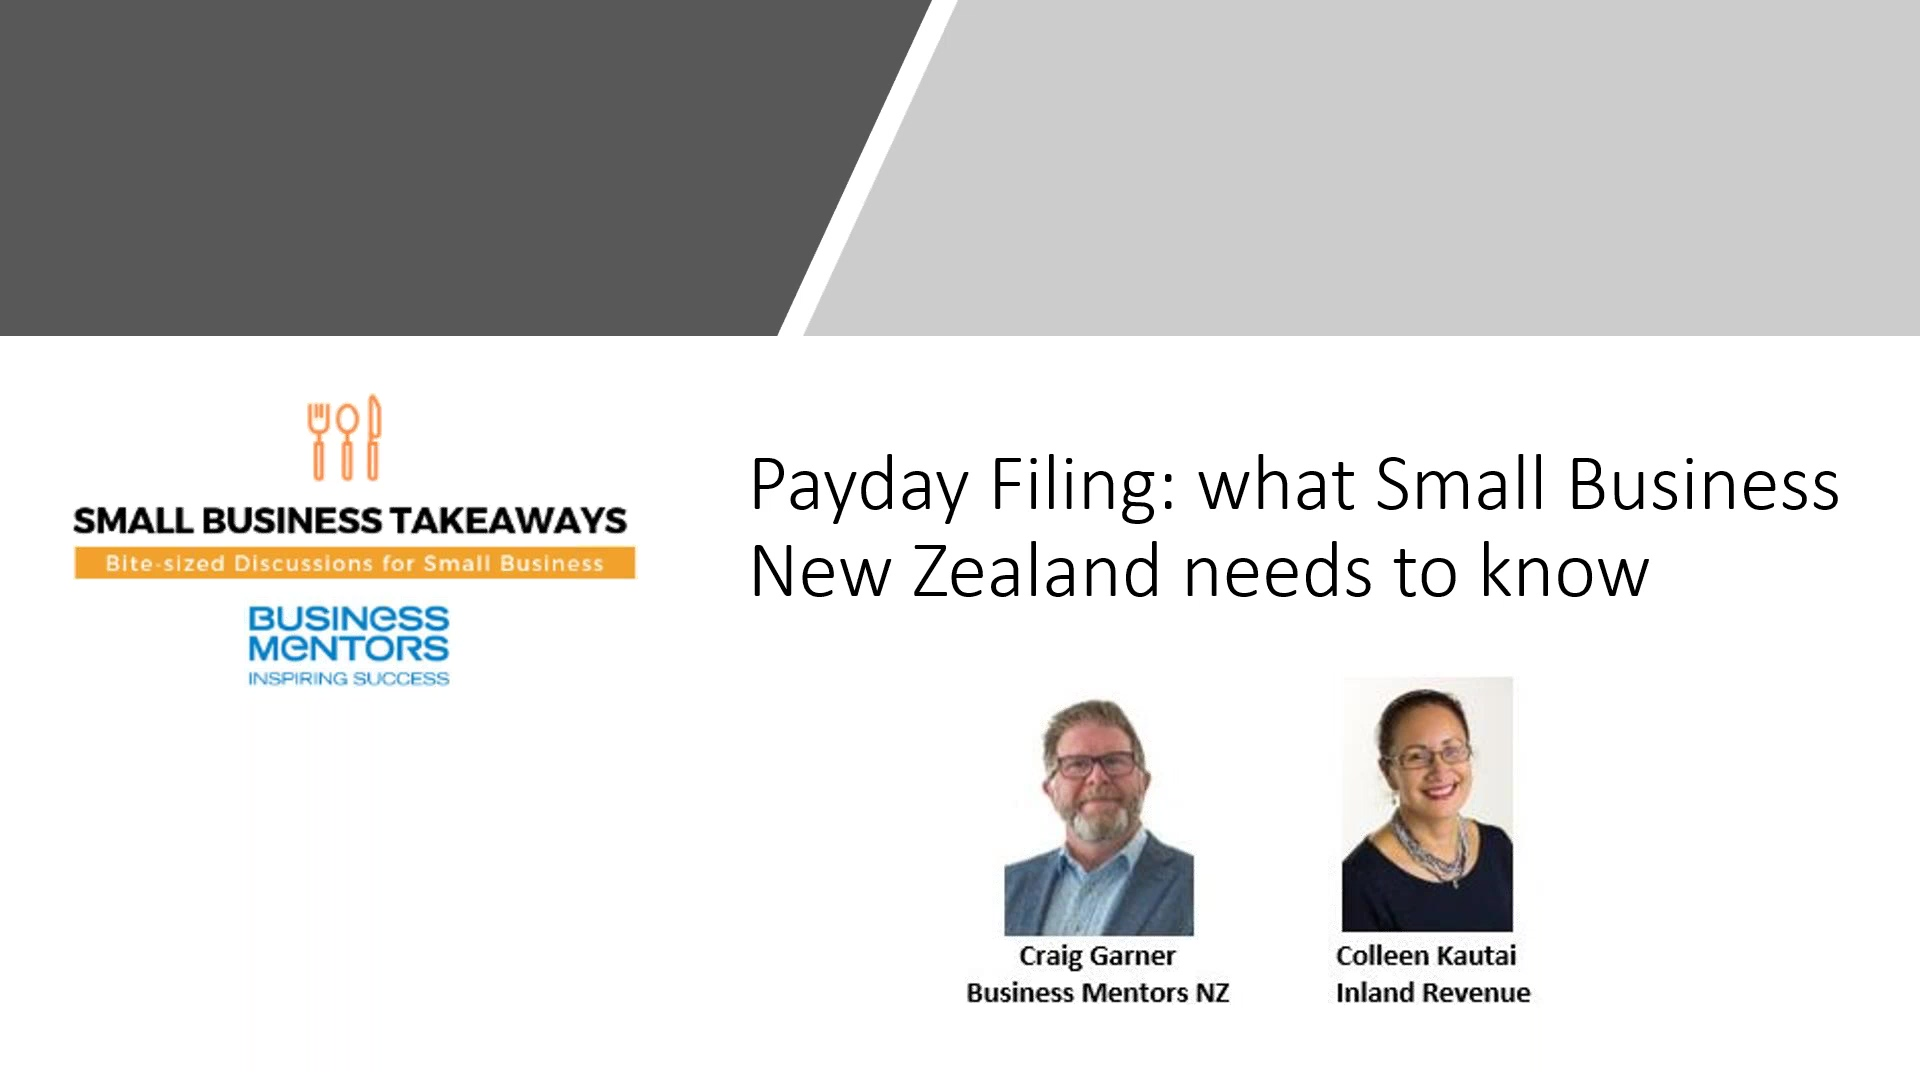 Business Mentors NZ Small Business Takeaways_ Payday Filing - what Small Business New Zealand needs